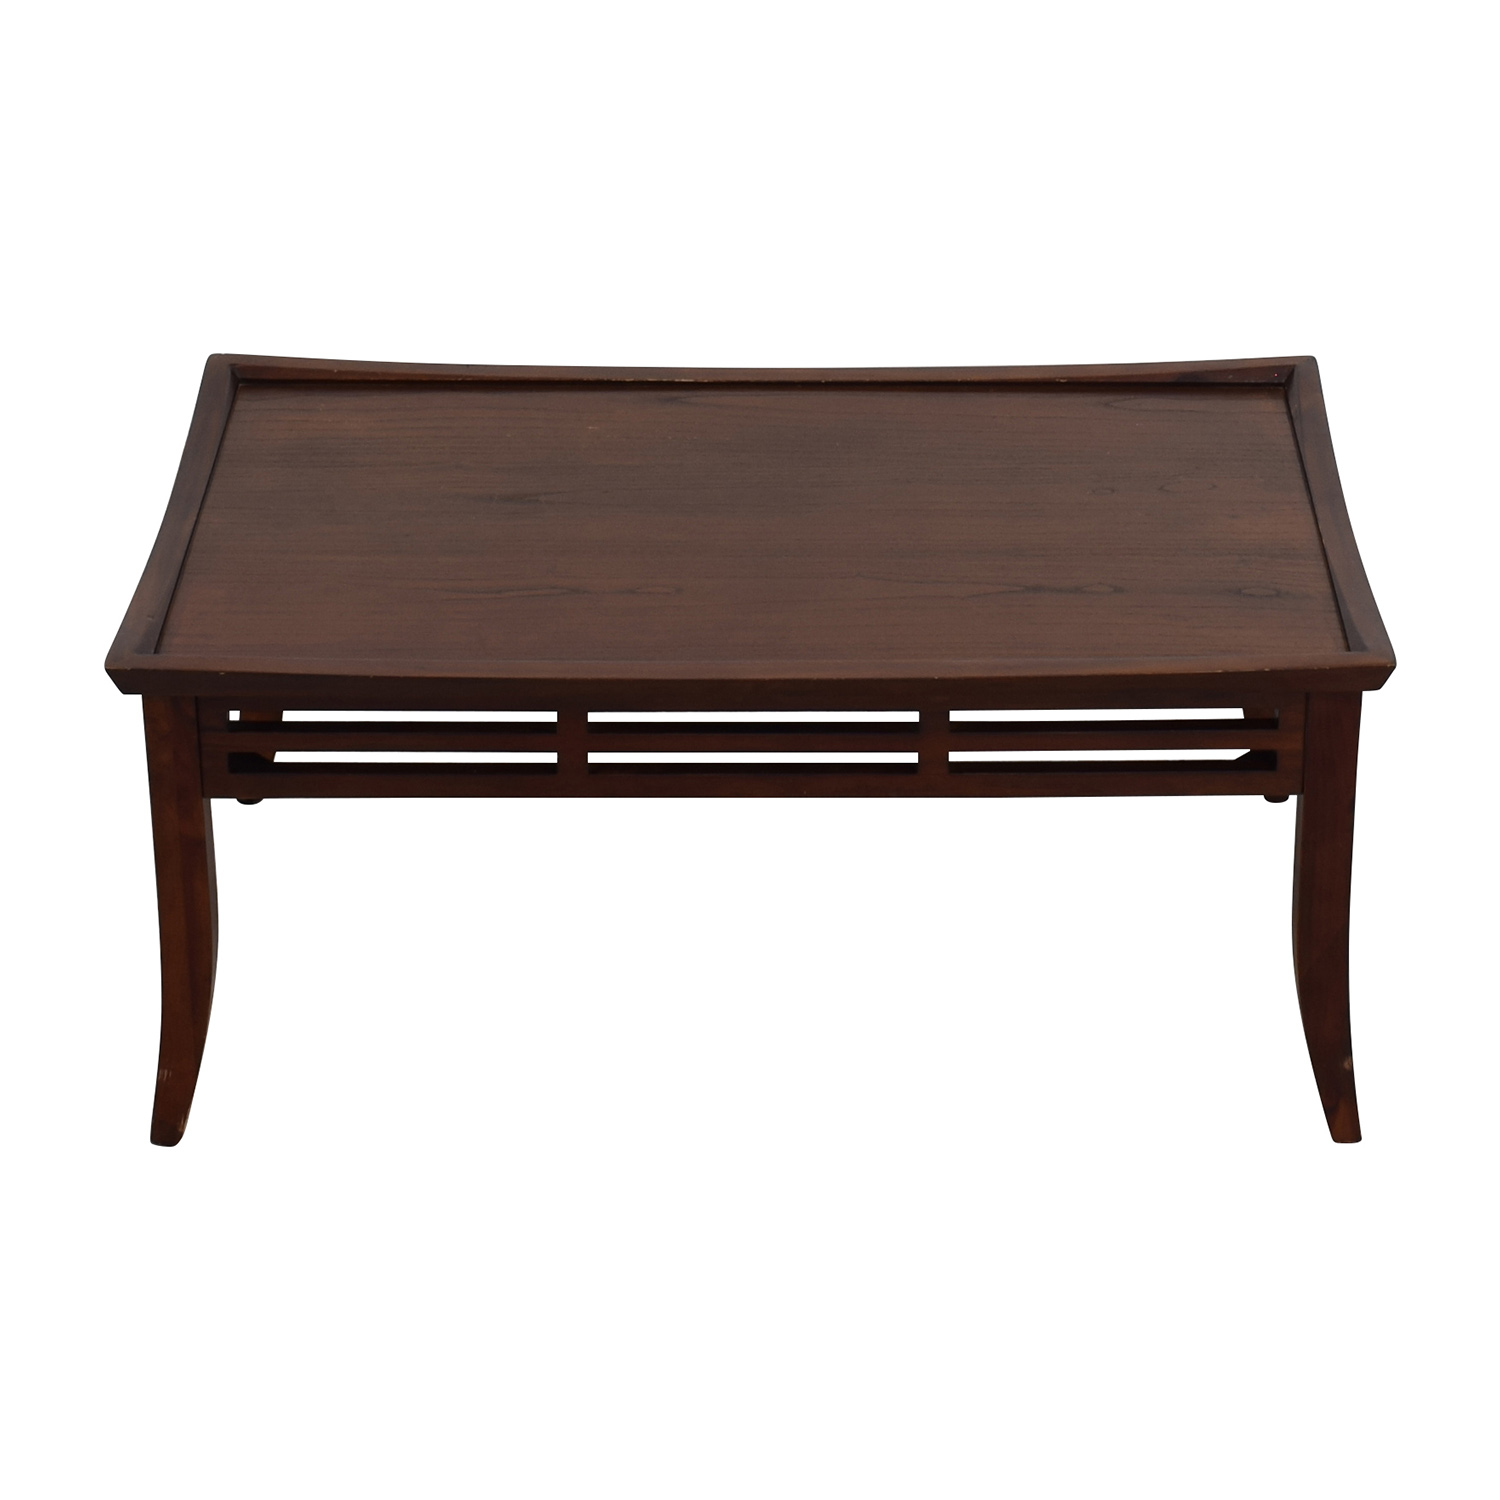 80% OFF Black Coffee Table Tables